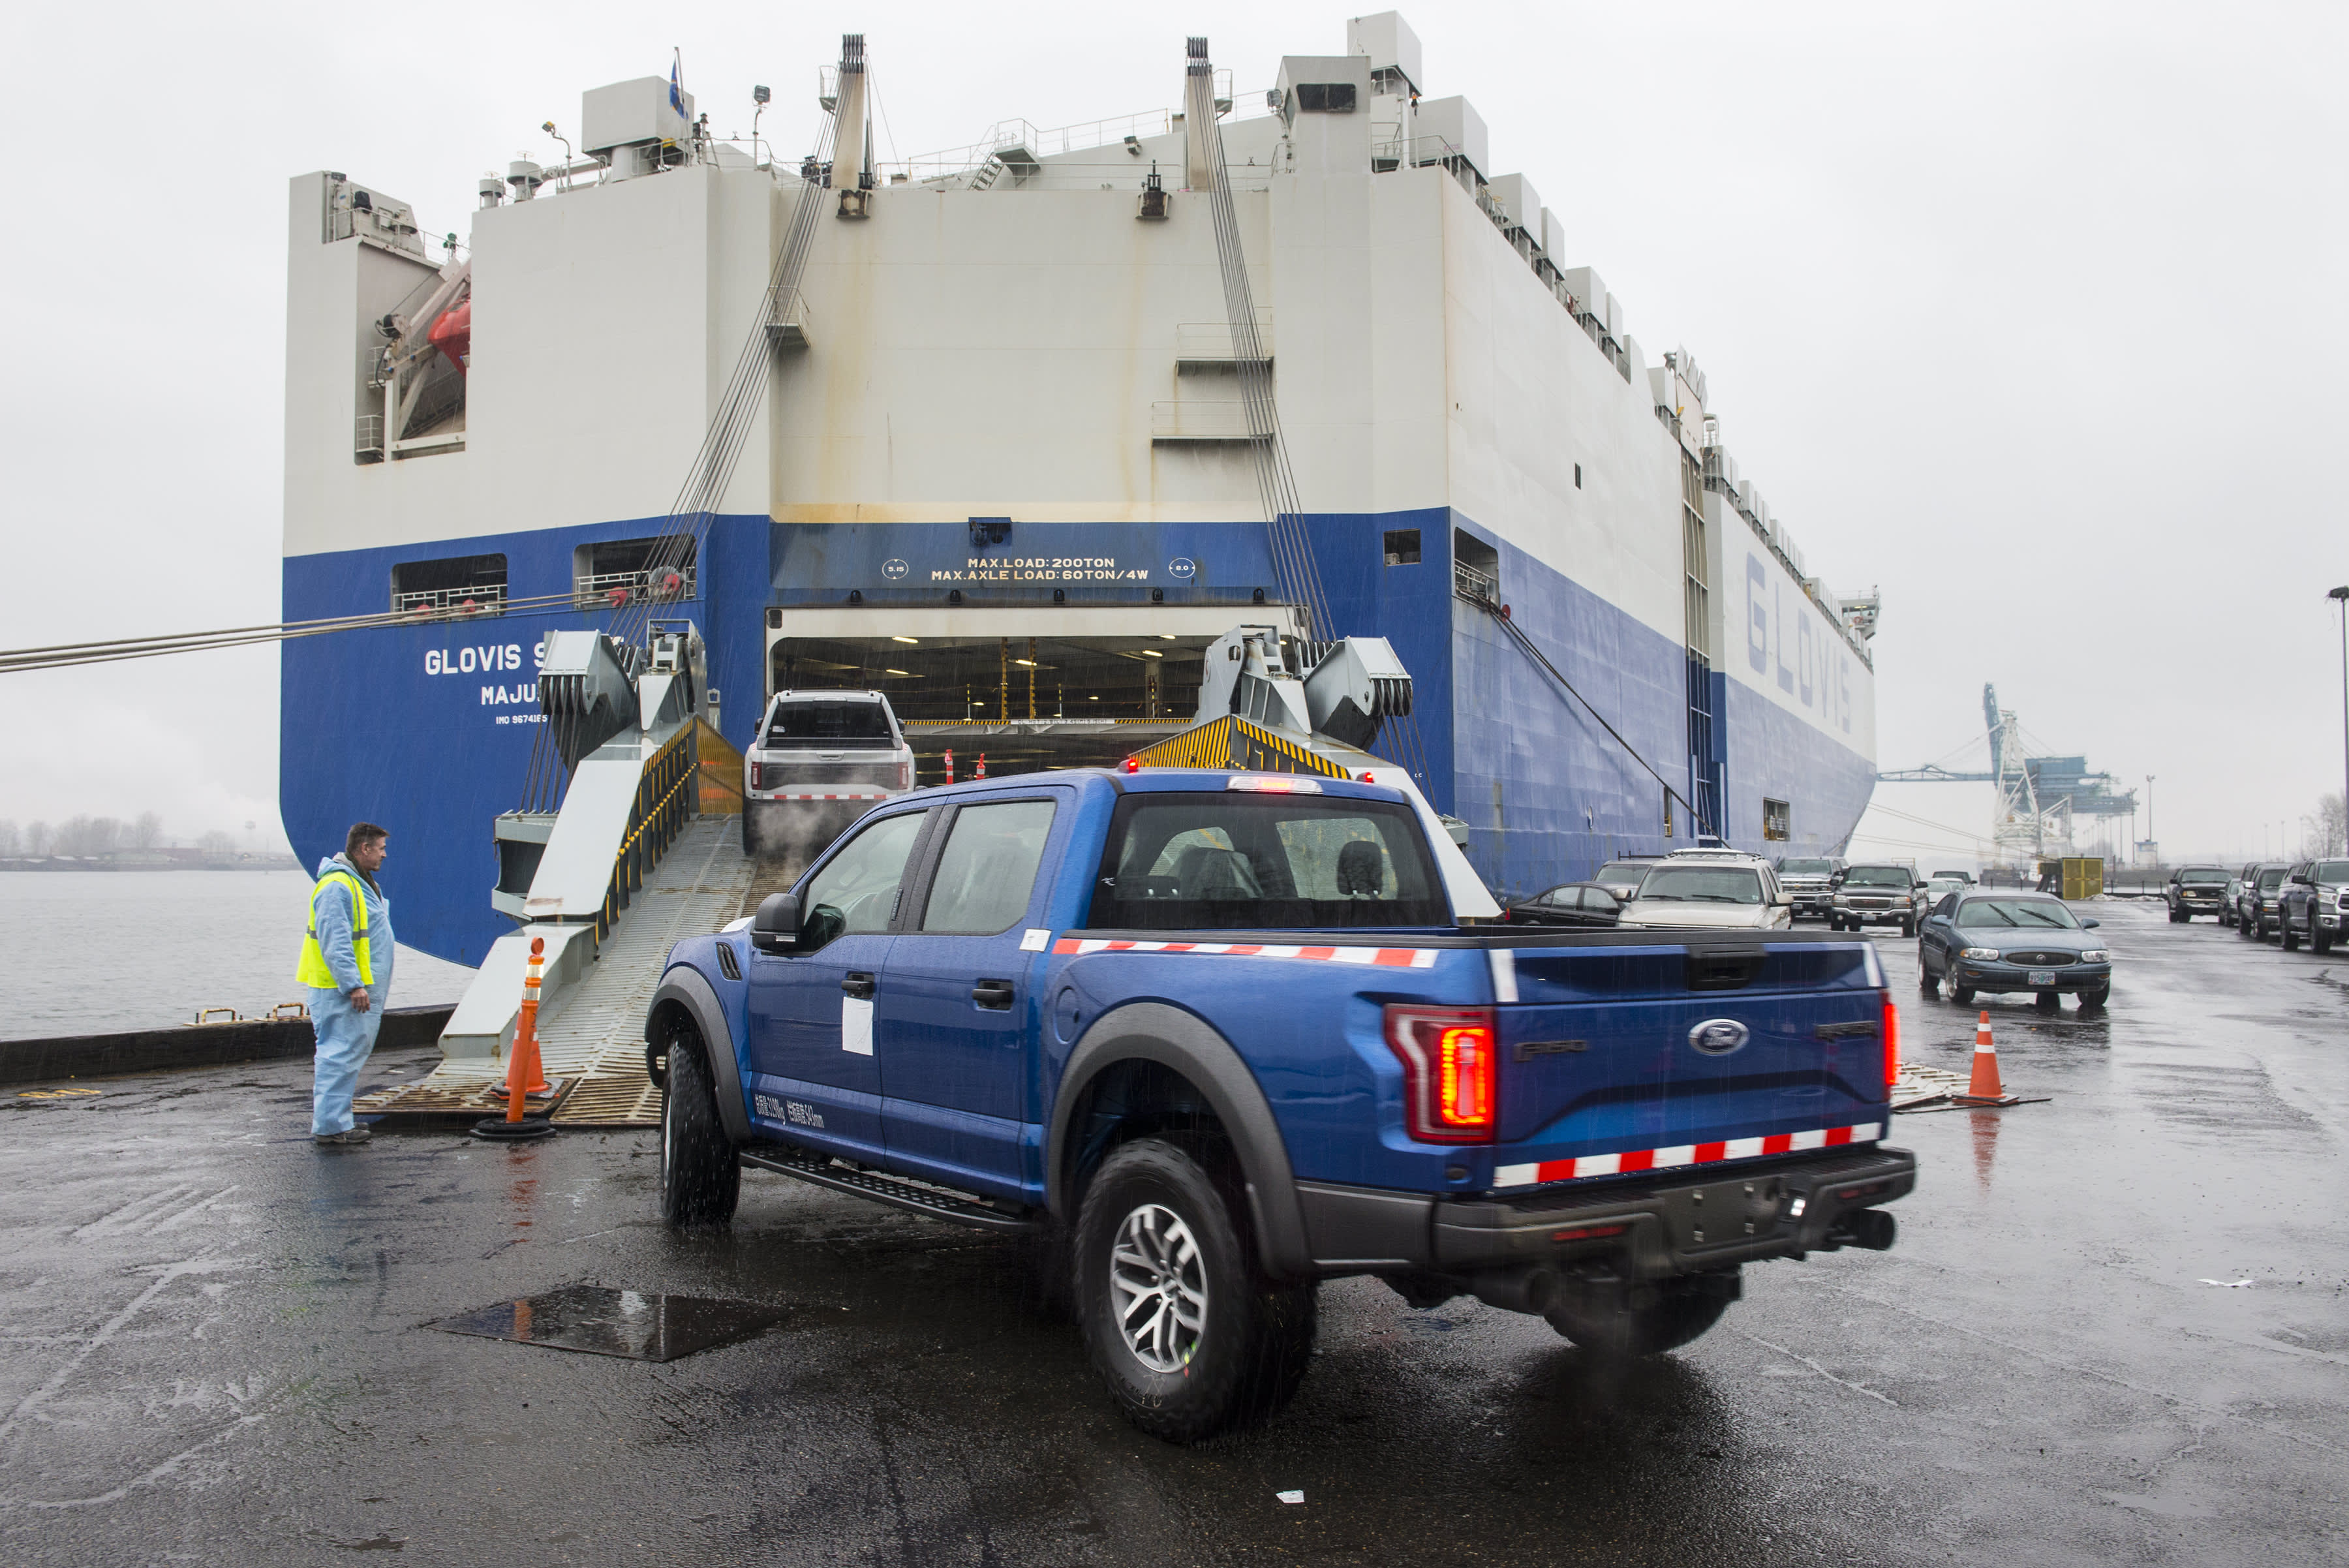 China is pickup country ford says yes biocorpaavc Gallery